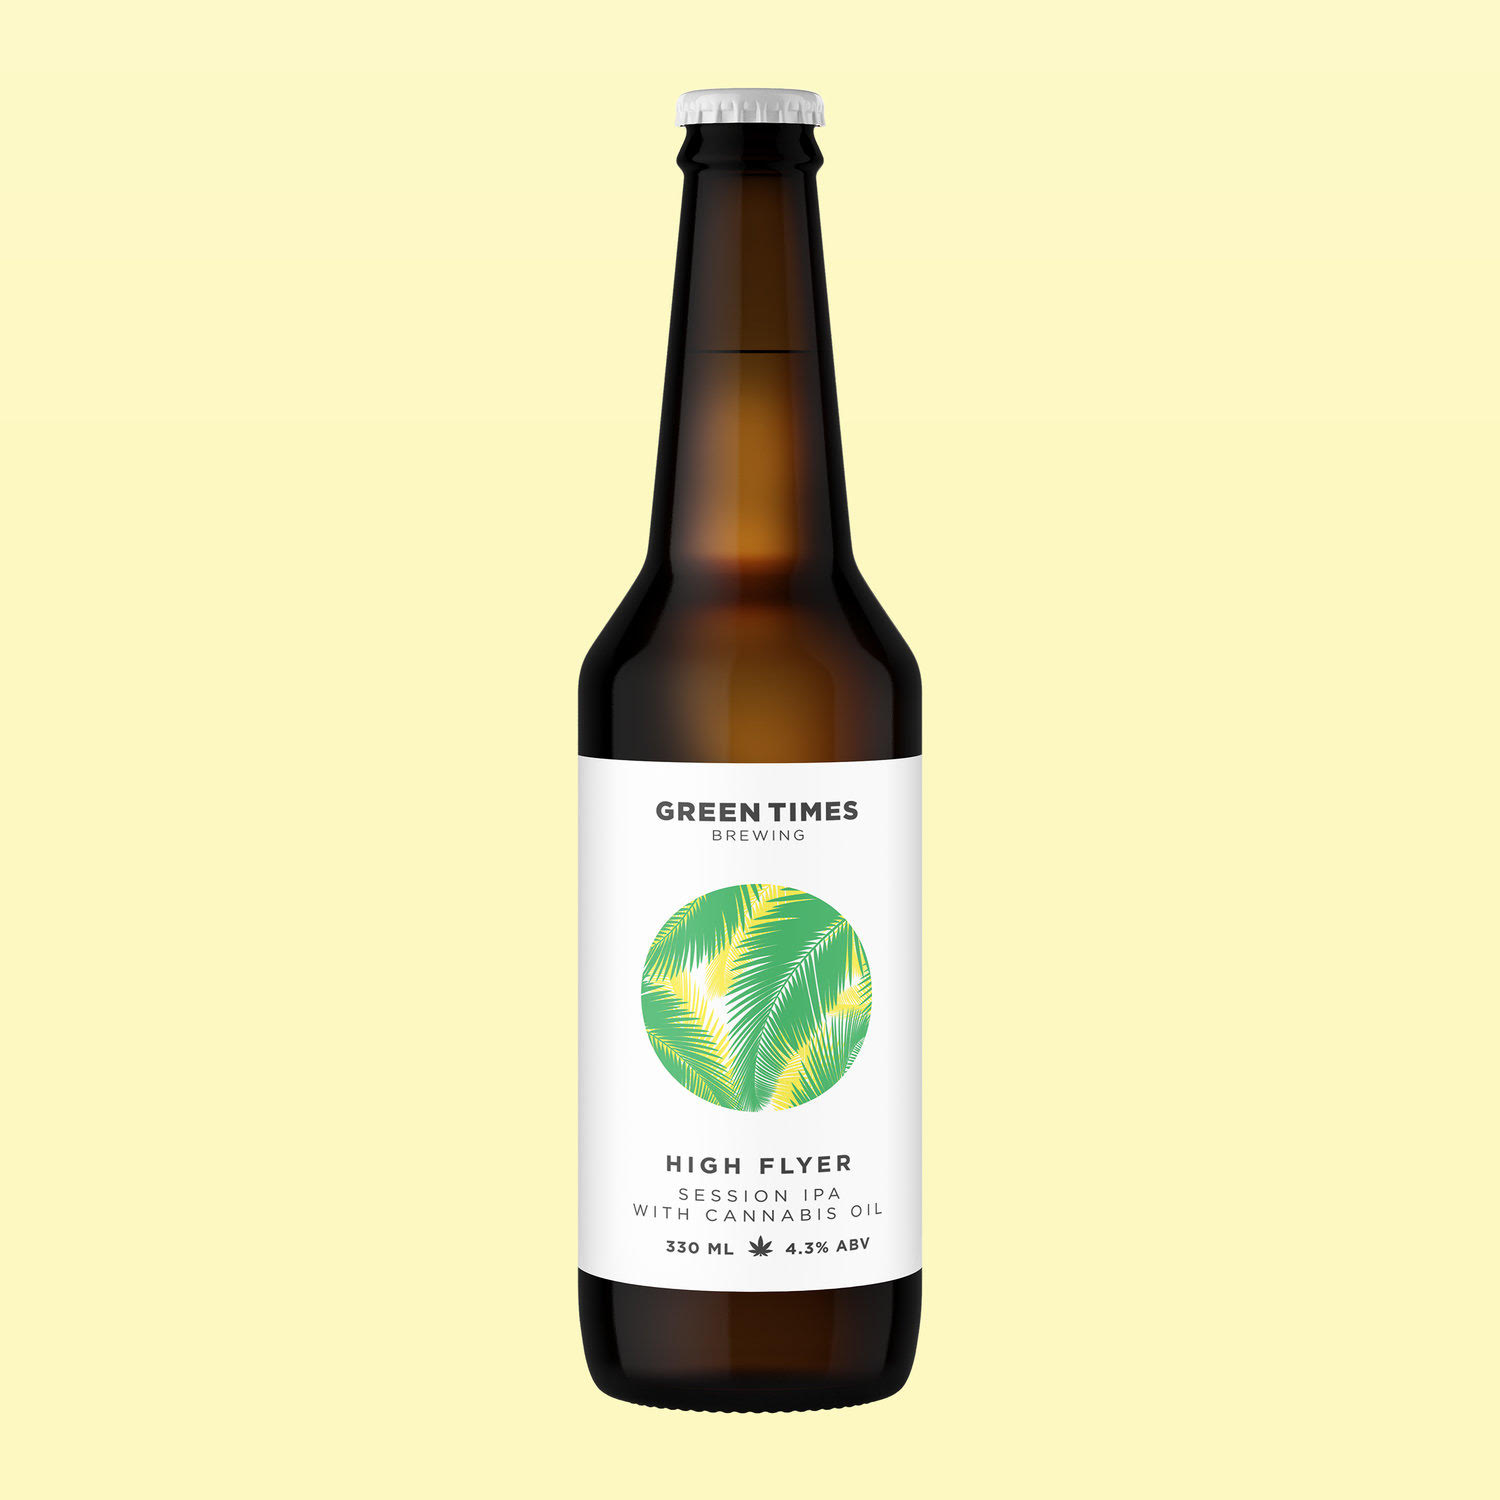 CBD beer, CBD beer in London, Green Times CBD beer